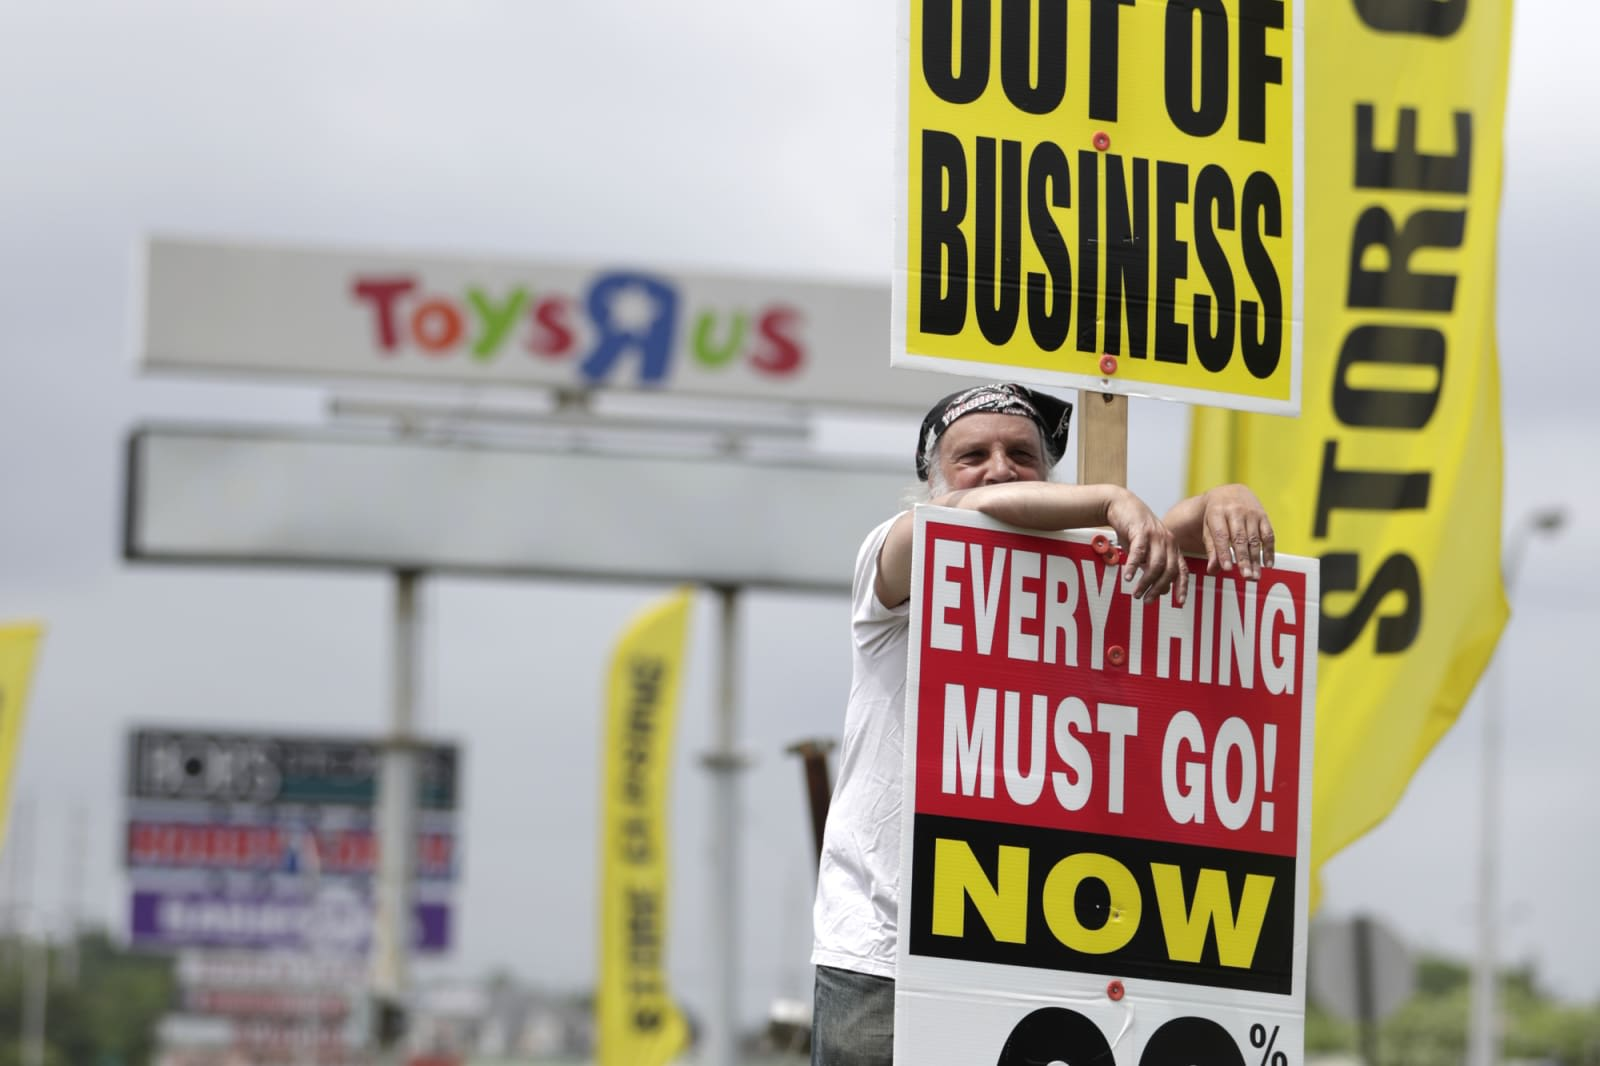 Toys 'R' Us could come back with six stores and a website